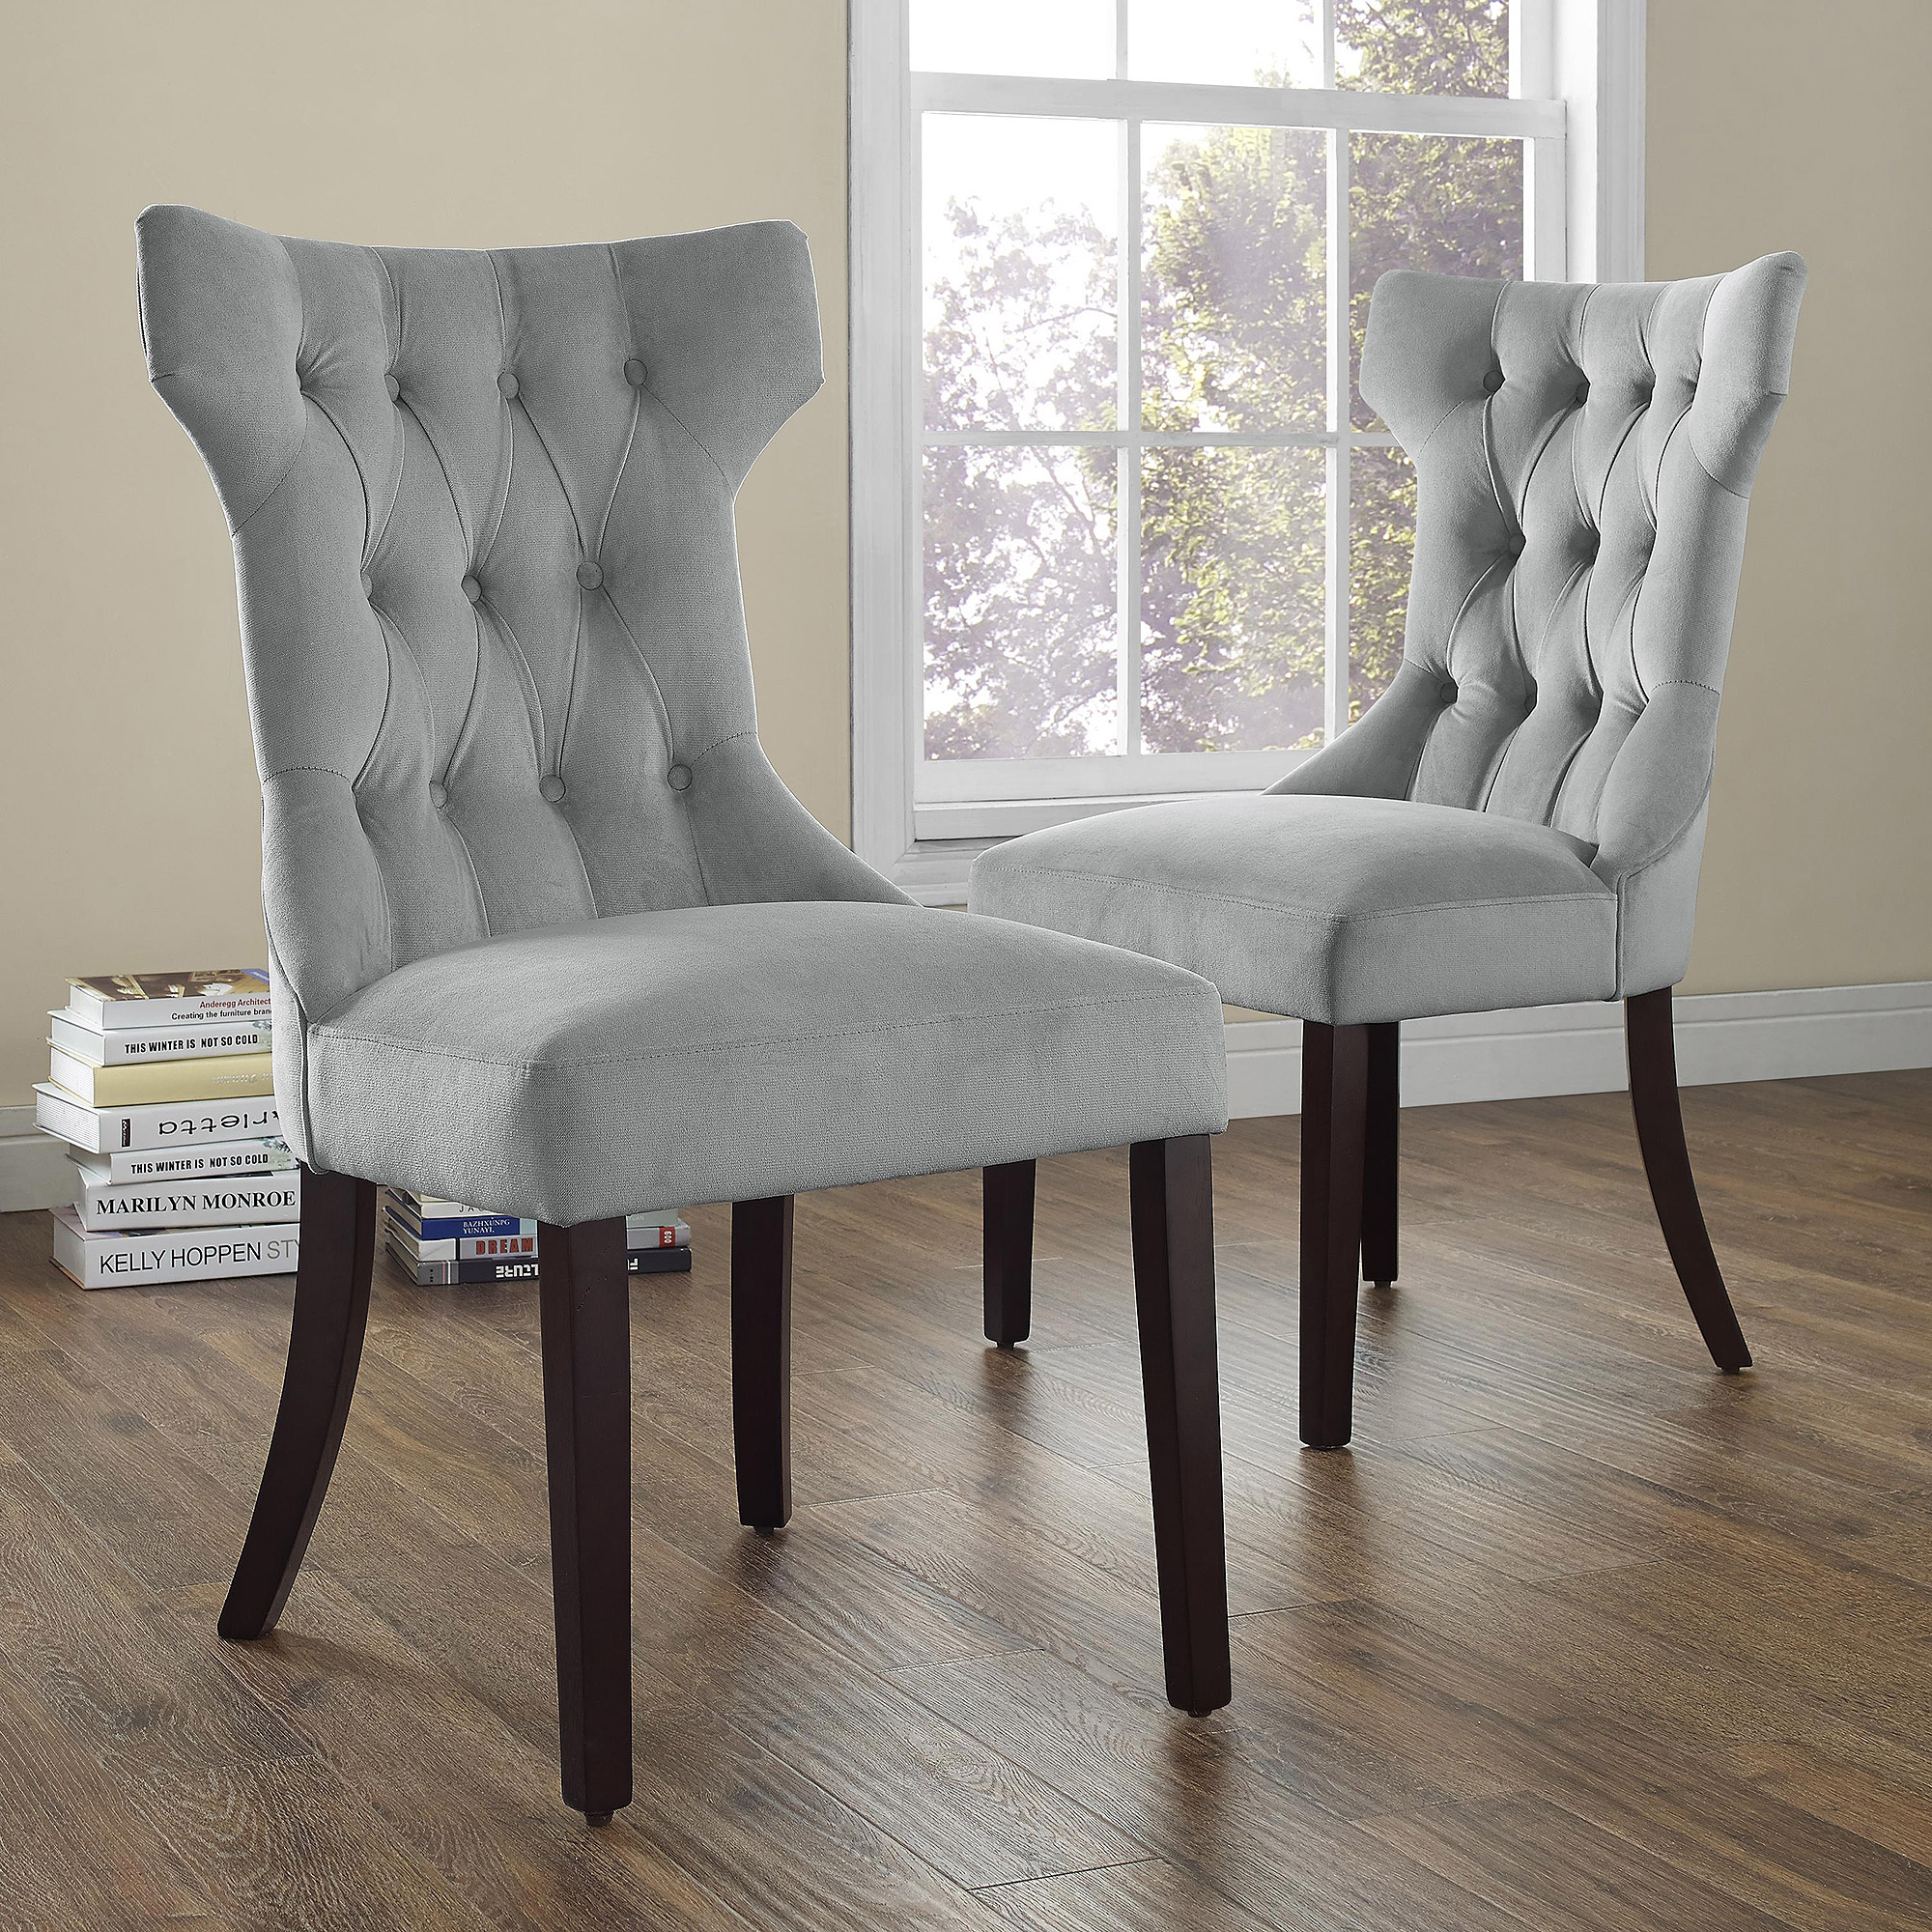 tufted dining room chairs fishing mrs macquarie's chair dorel living clairborne set of 2 walmart com